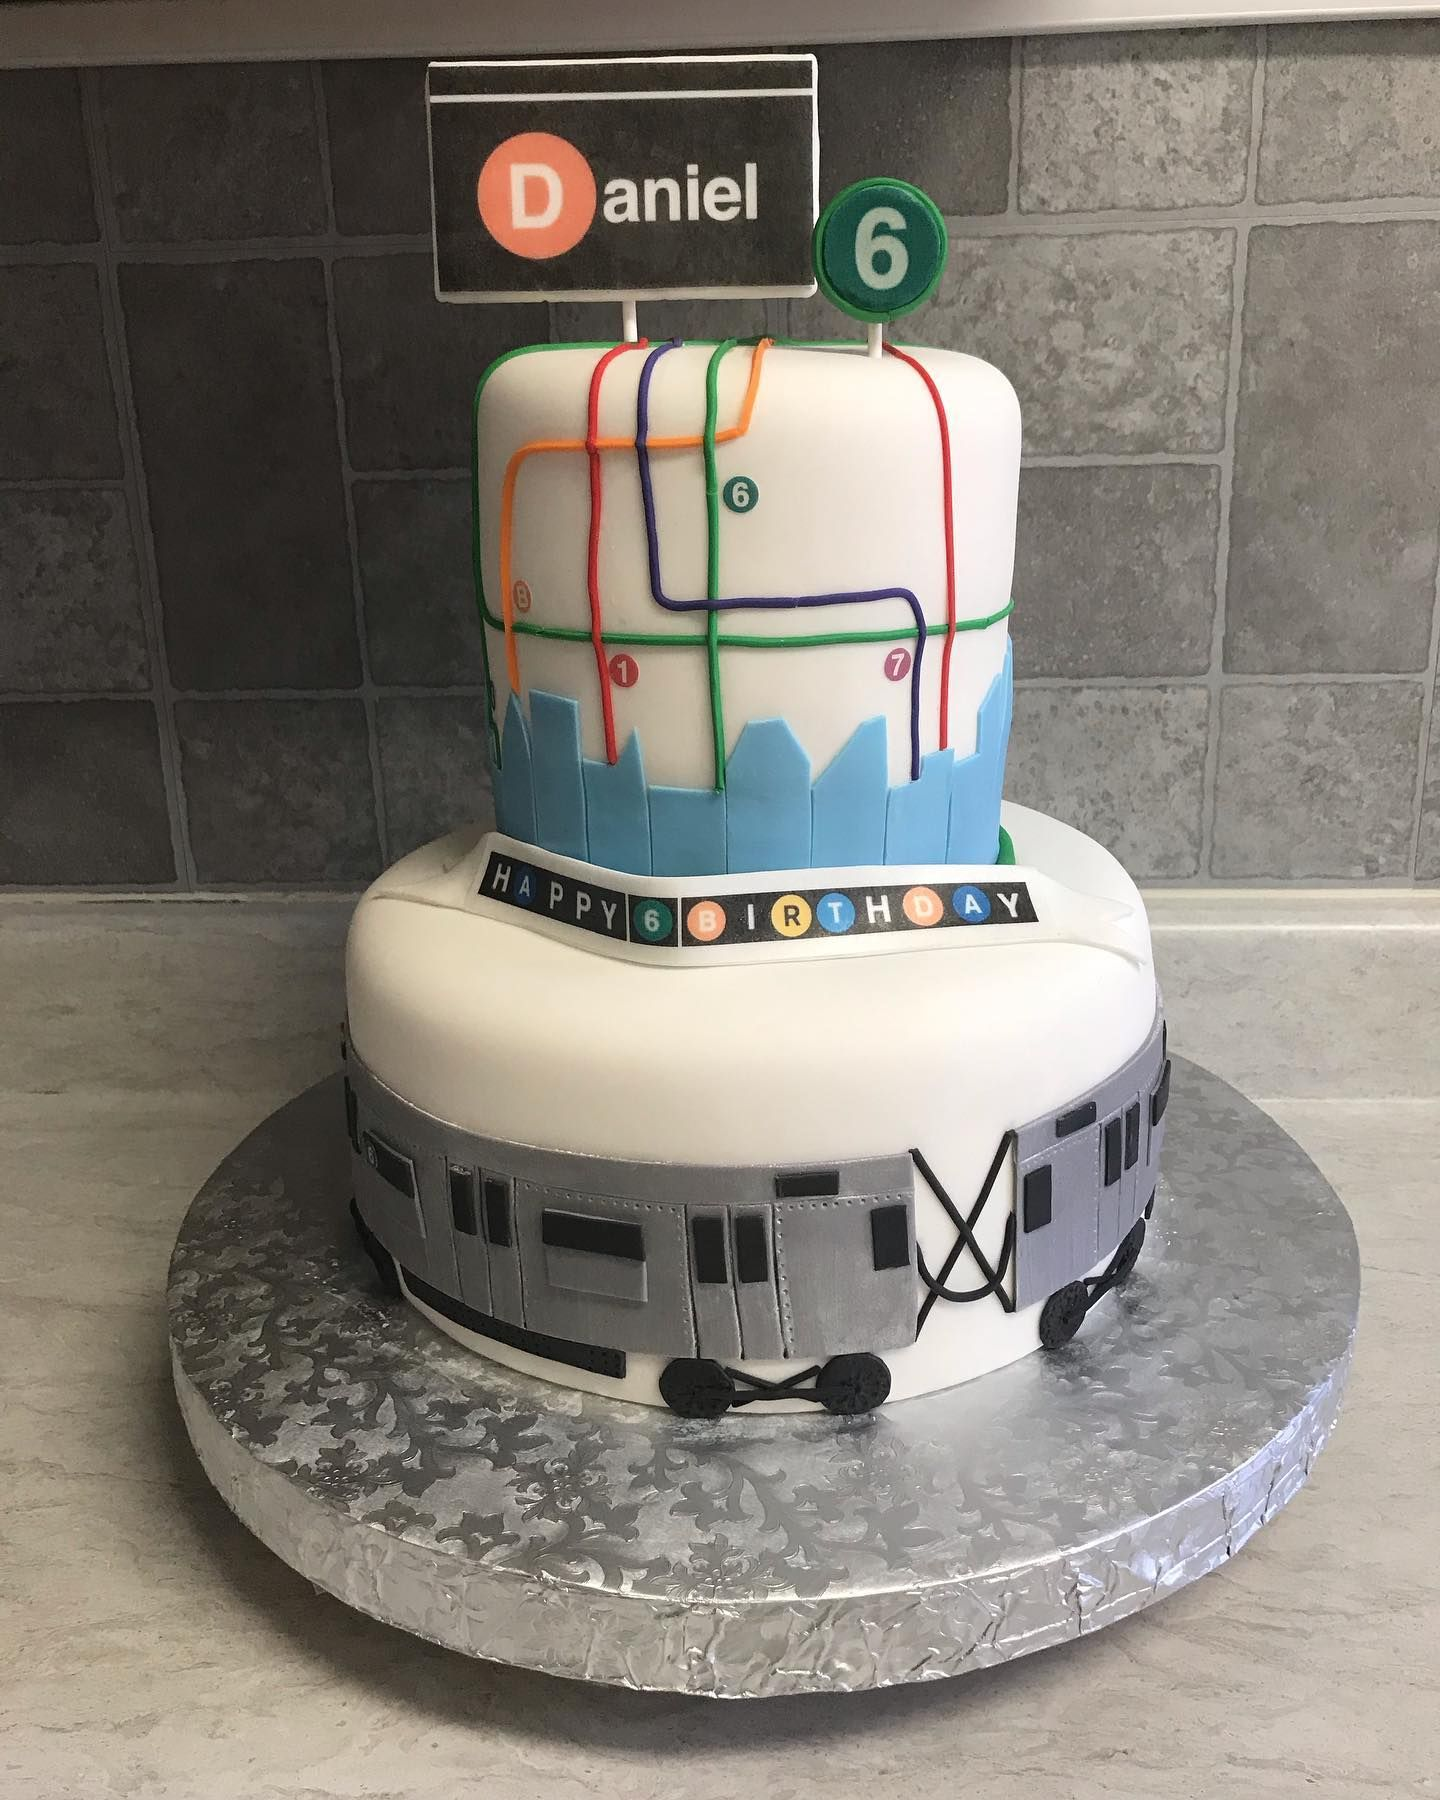 Stand Clear Of The Closing Door Please The Next Stop Is Isascake Mta Train Cake Cakeideas Isascakeny Isascake Iphone Train Cake Cake Fondant Cake